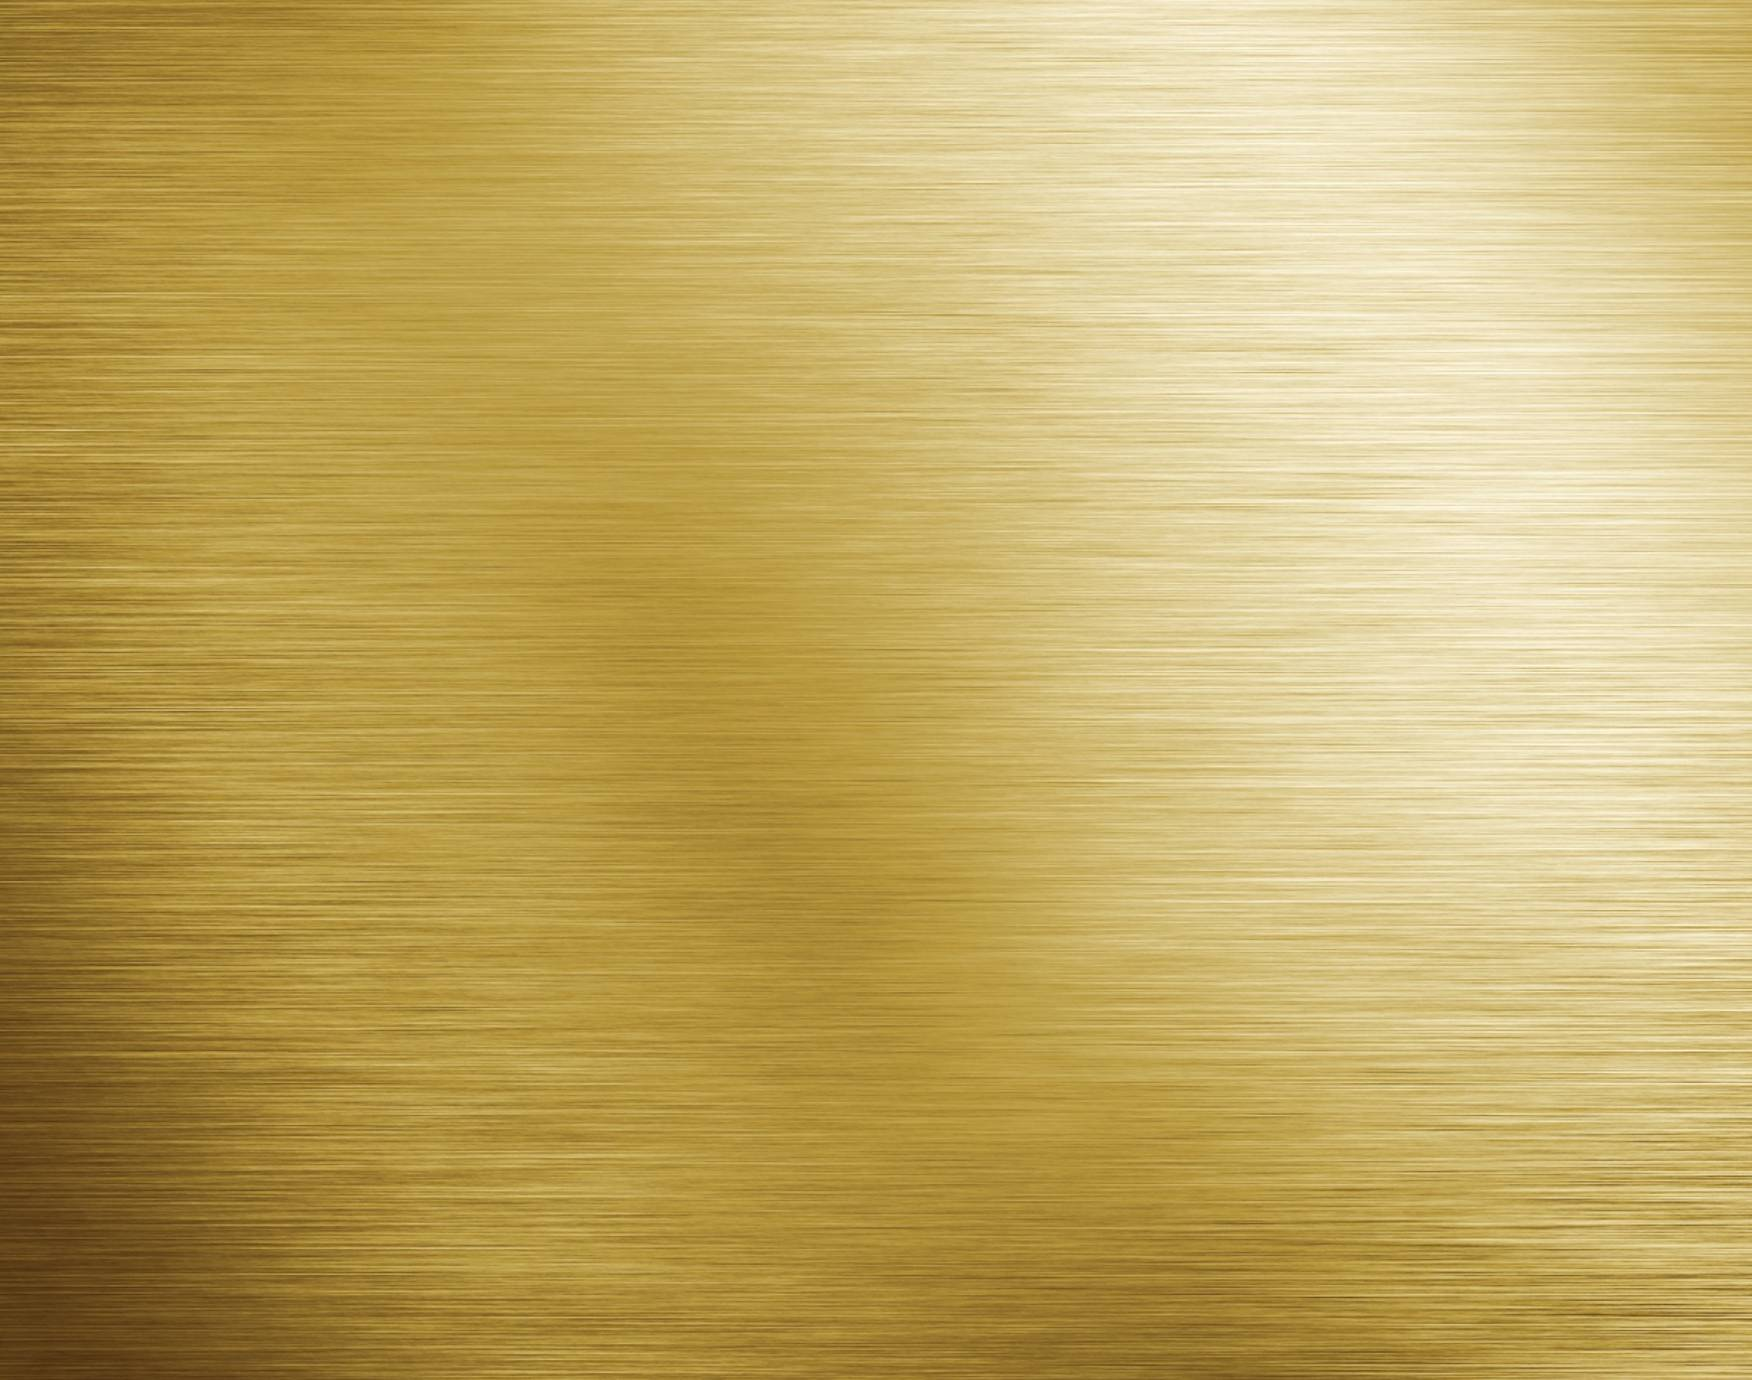 Gold Background Images 1752x1380